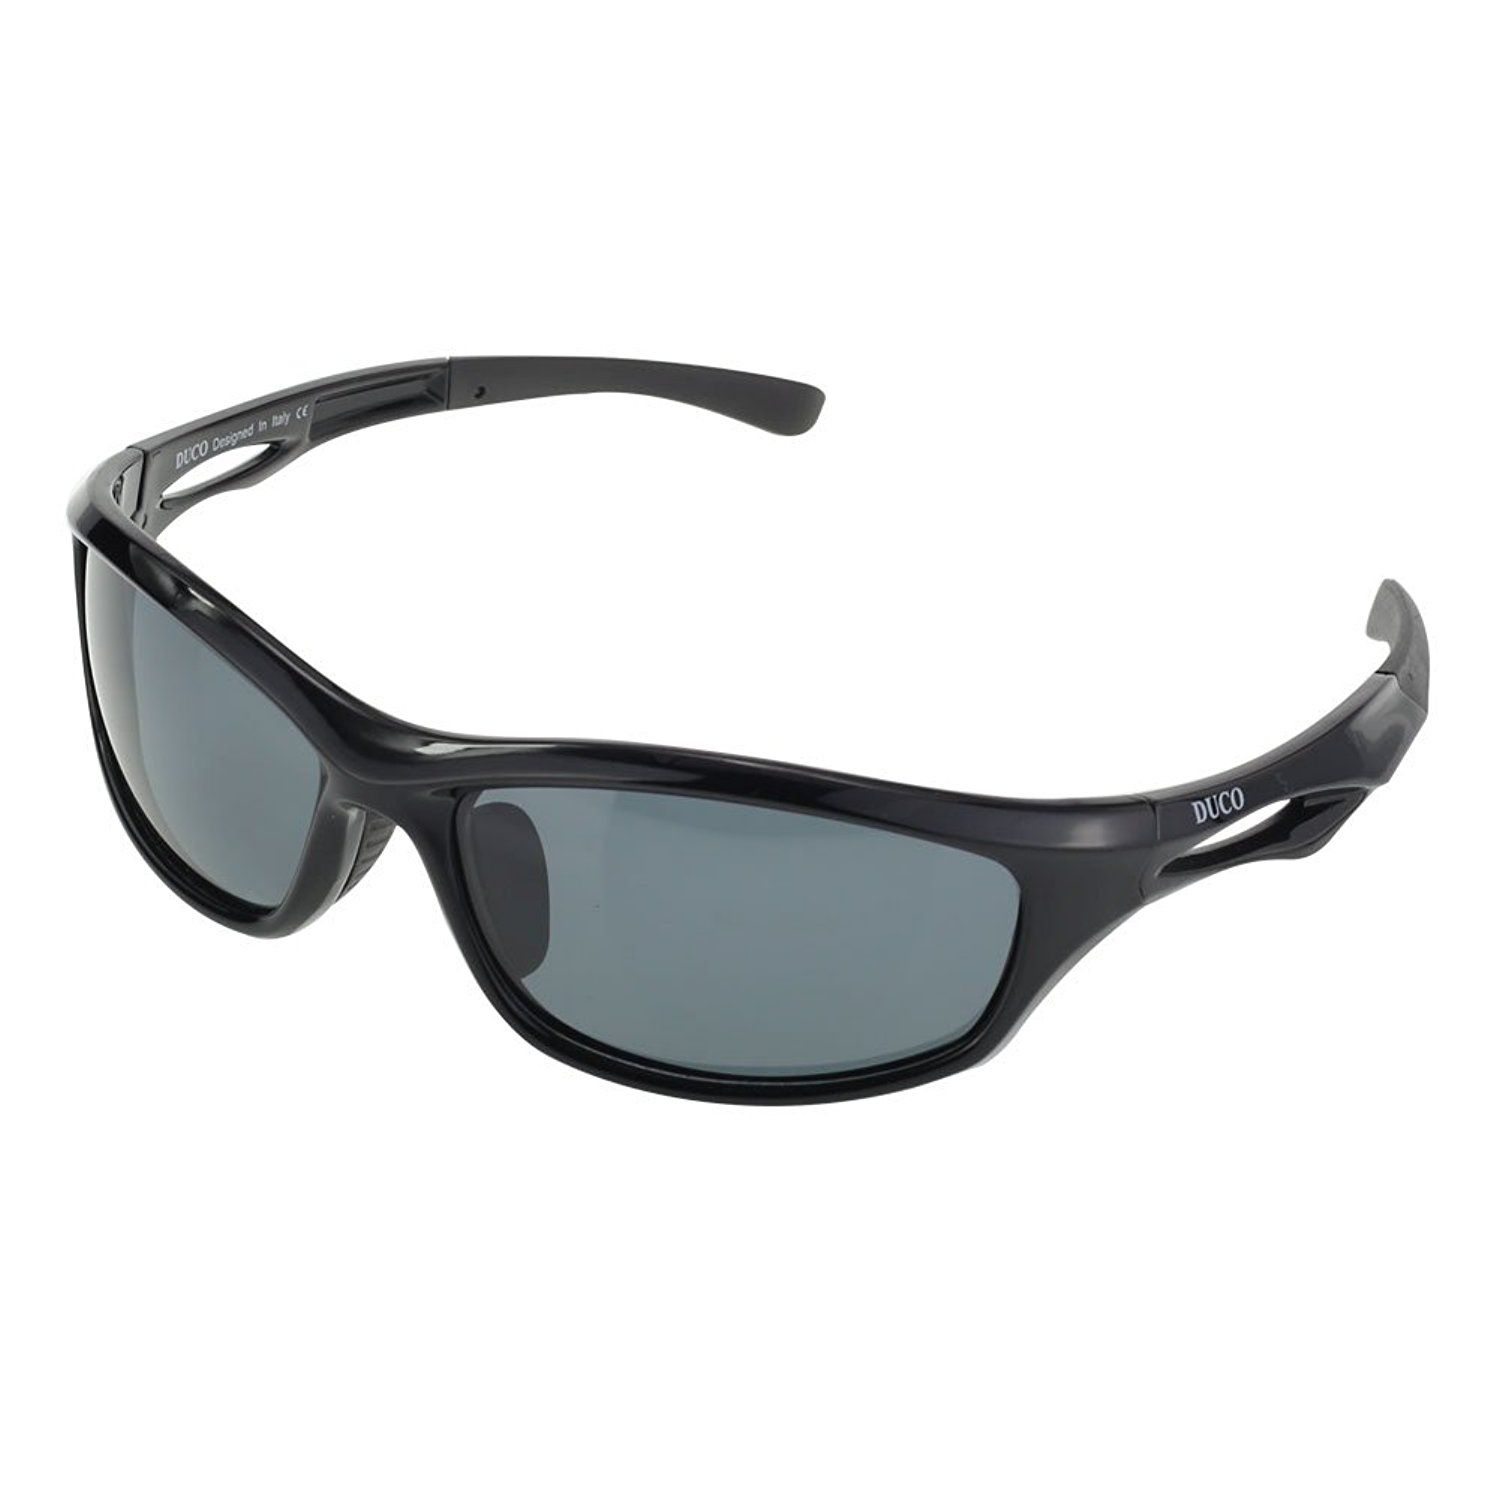 Gifts for Cyclists DUCO Polarized Sunglasses for Running